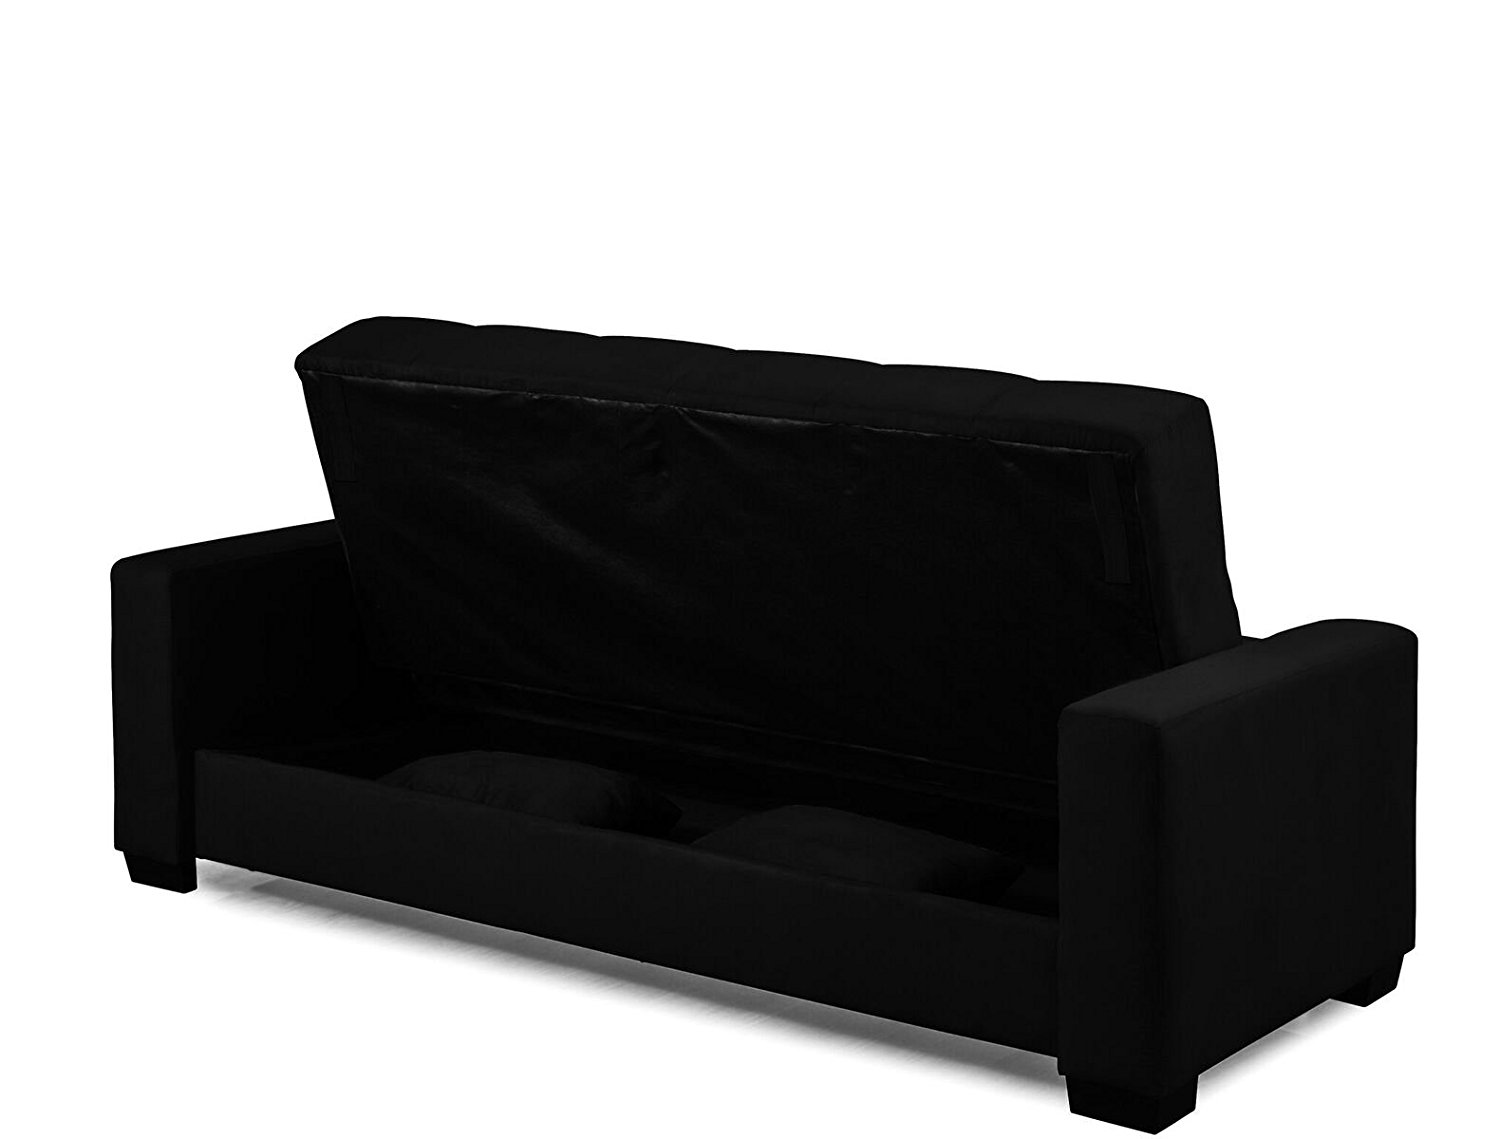 sofa lounger sleeper max home reviews microfiber bed and with storage black